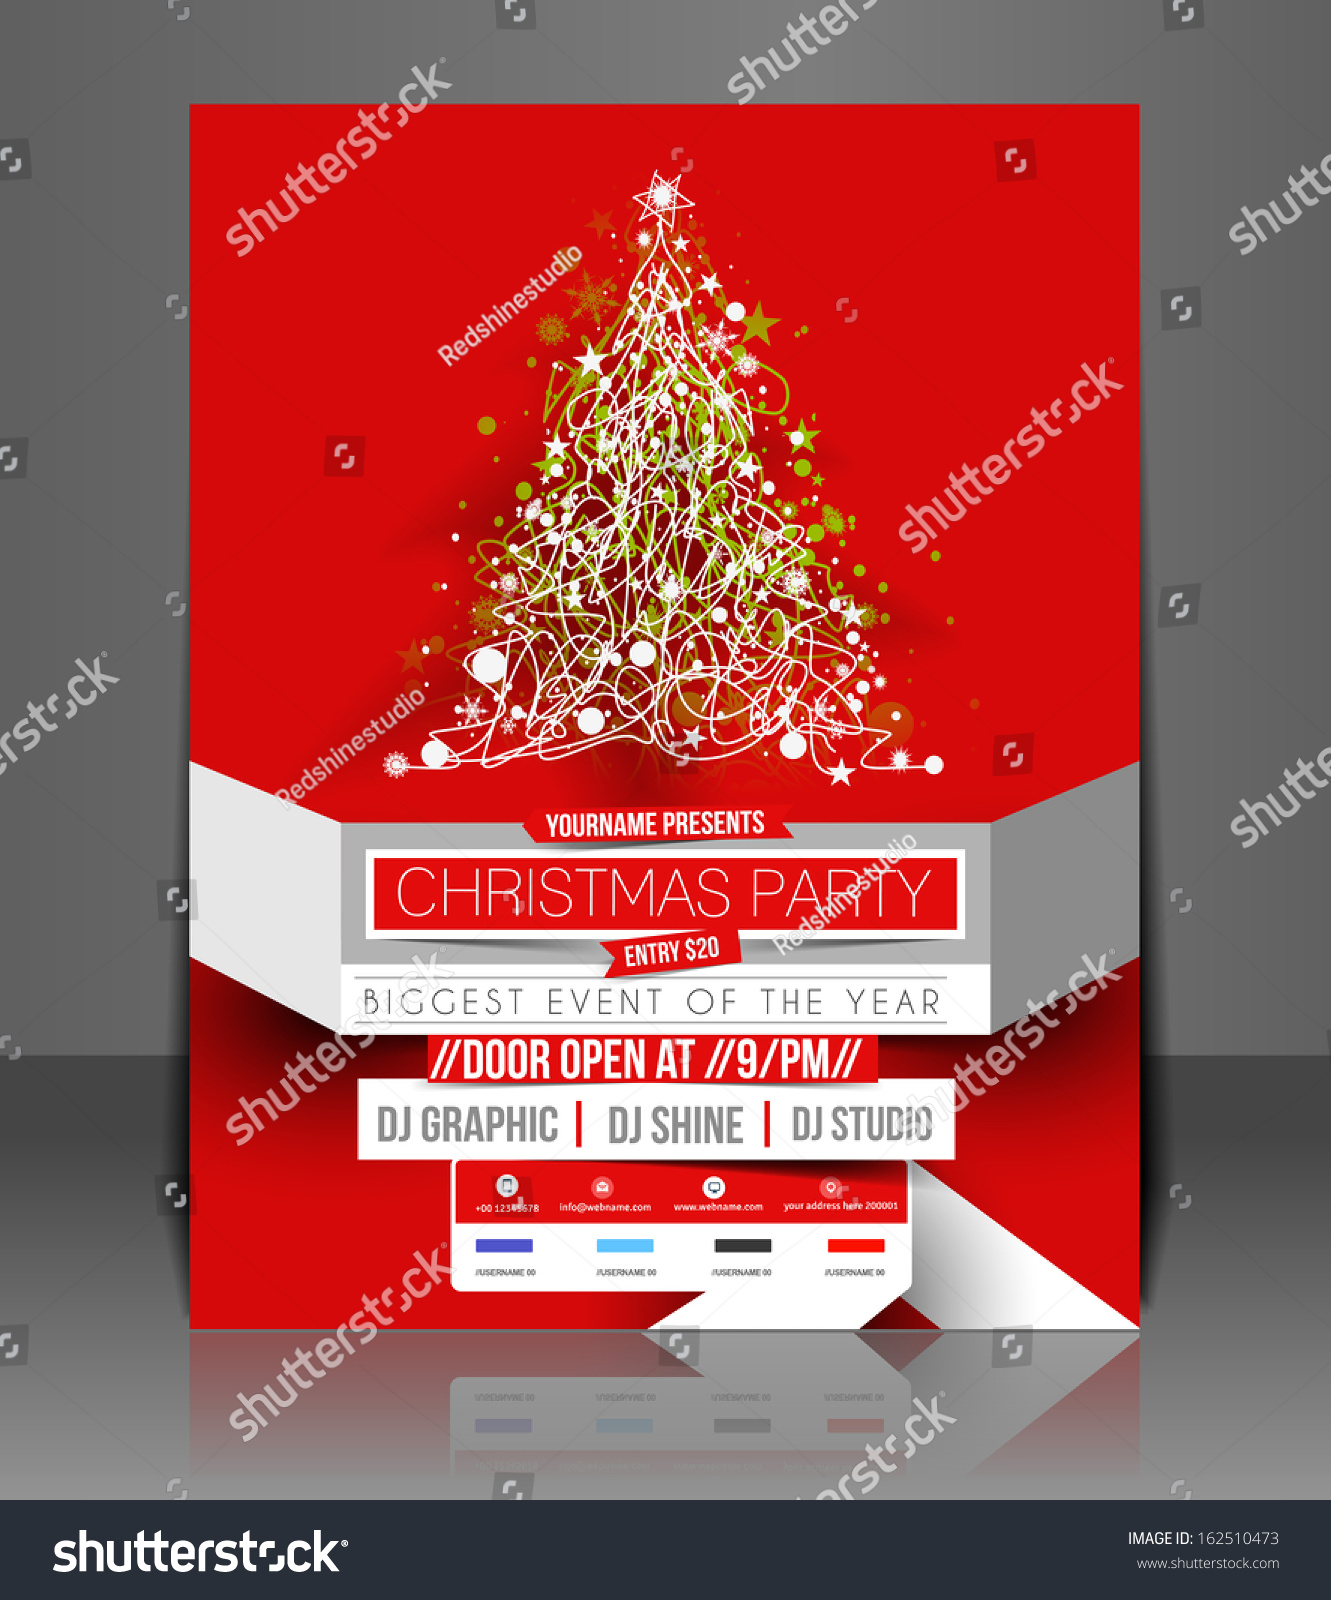 christmas party flyer poster template stock vector  christmas party flyer poster template